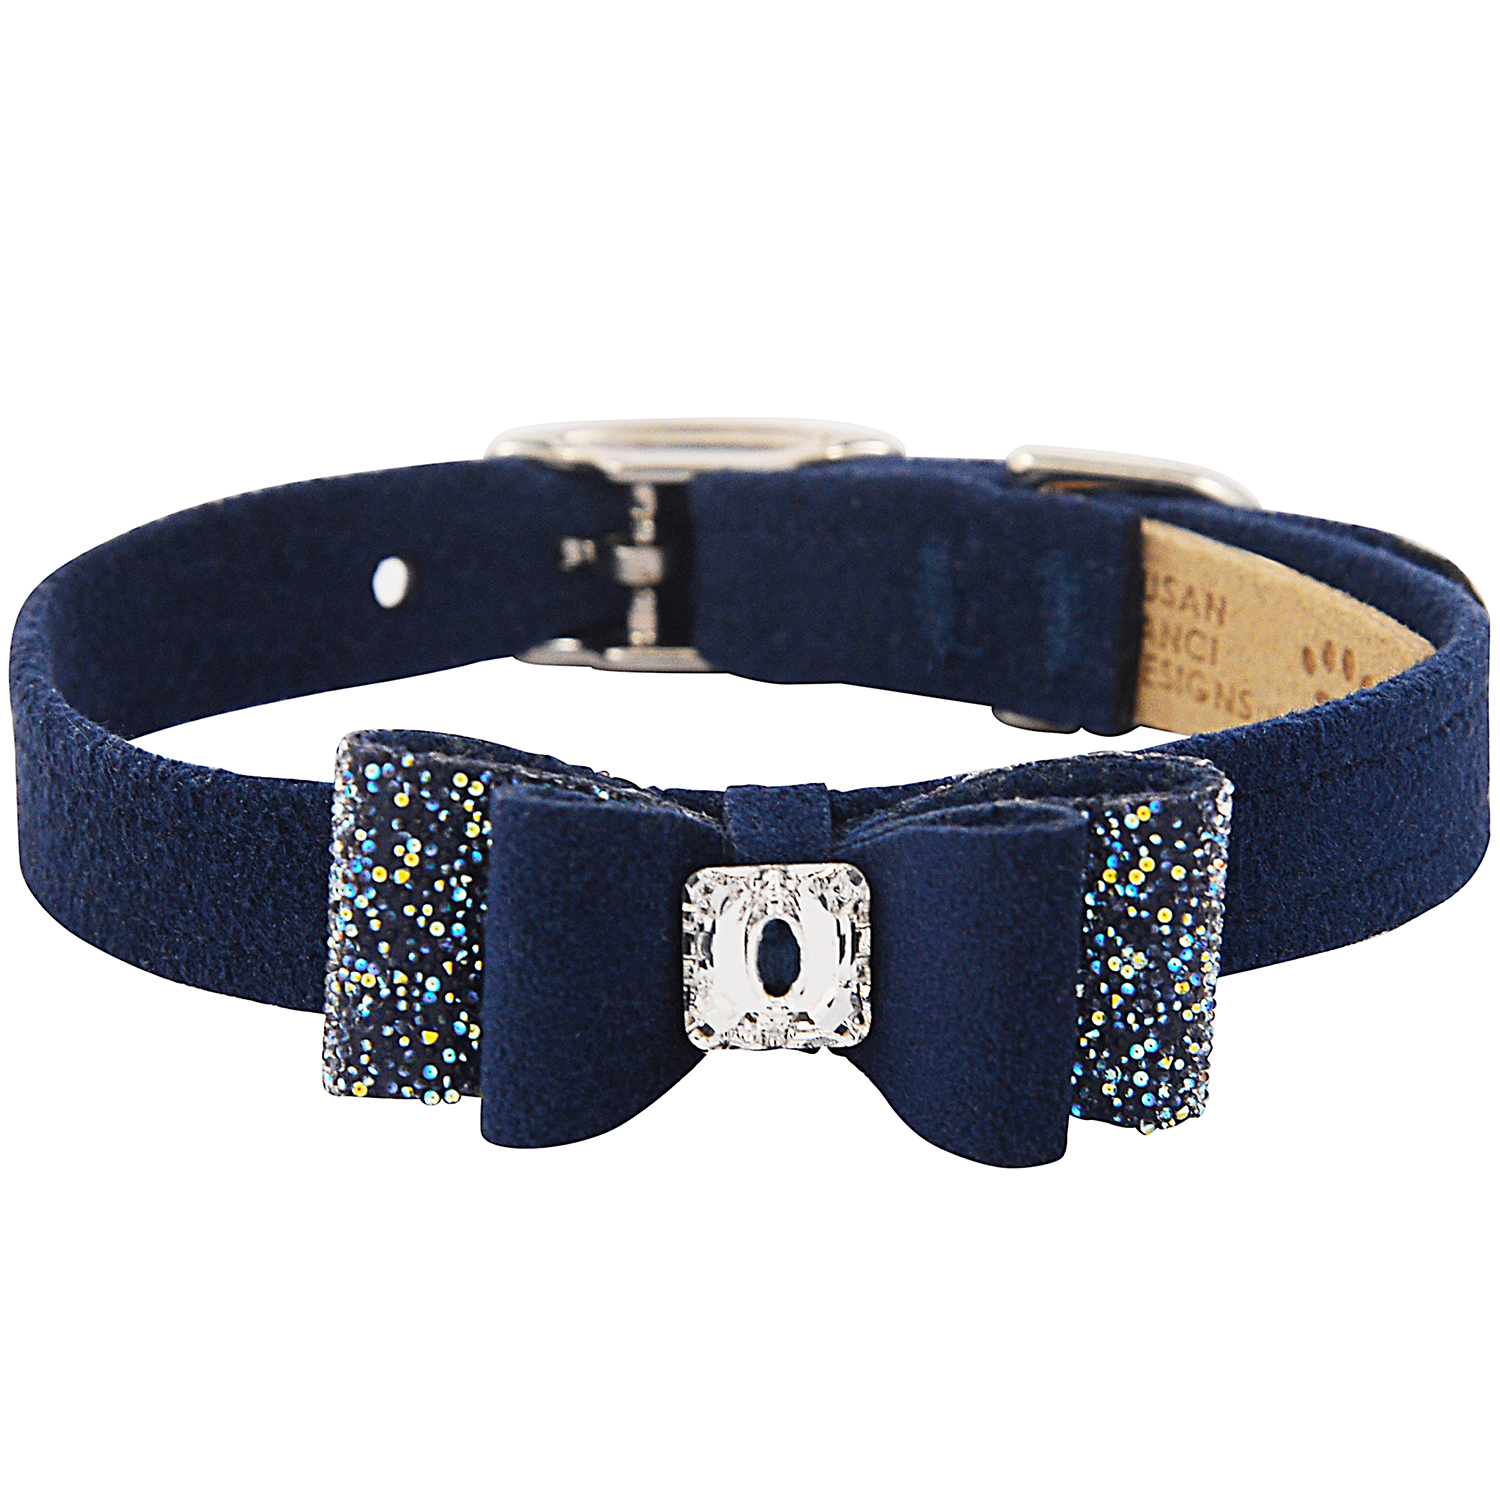 Crystal Stellar Big Bow Pet Collar: Indigo